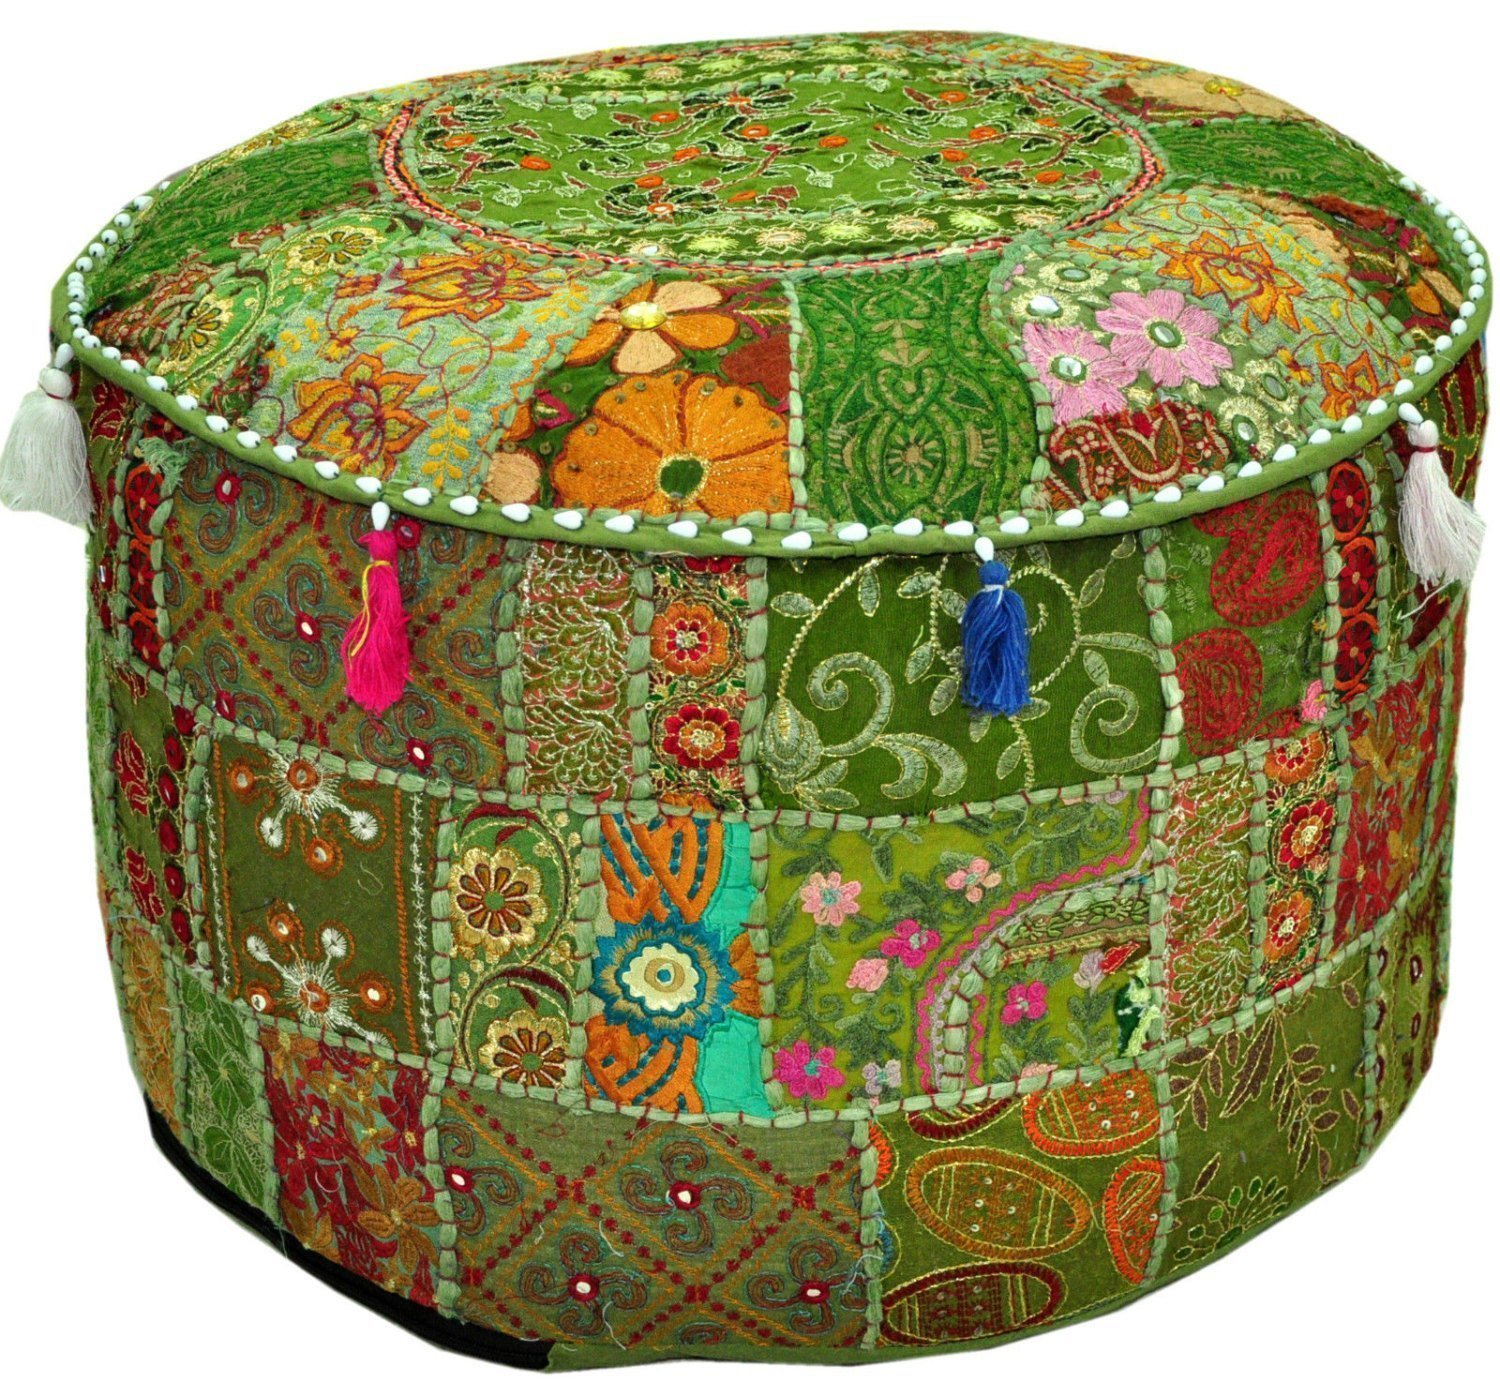 Indian Living Room Pouf, Foot Stool, Round Ottoman Cover Pouf, Handmade Decorative Patchwork Home Decor Ottoman Cover By Bhagyoday Fashions